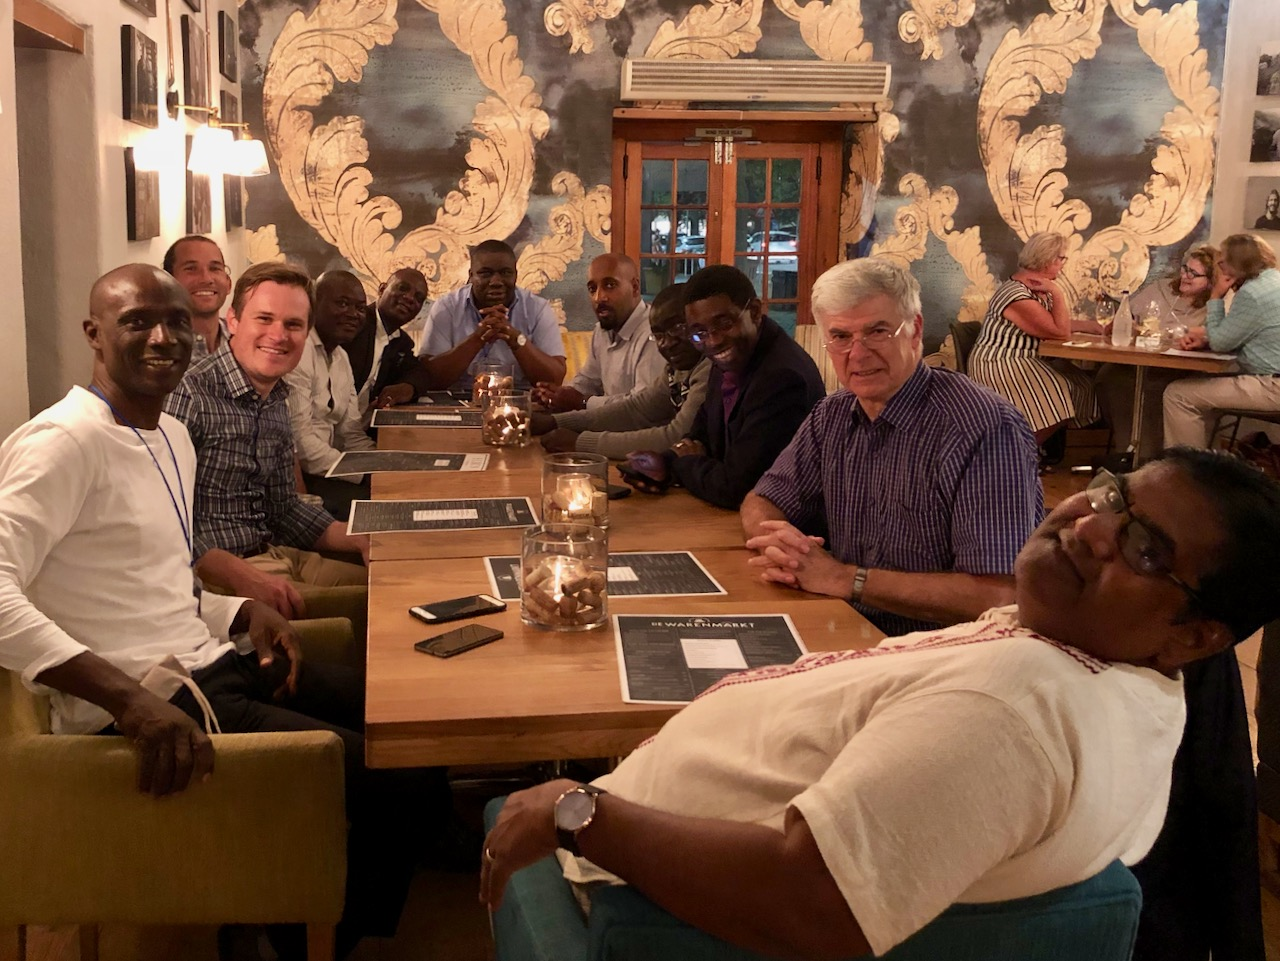 PhD Program - East Mountain hosted Christian leaders from 15 different countries spanning 5 continents, encouraging them in their ministry and work.